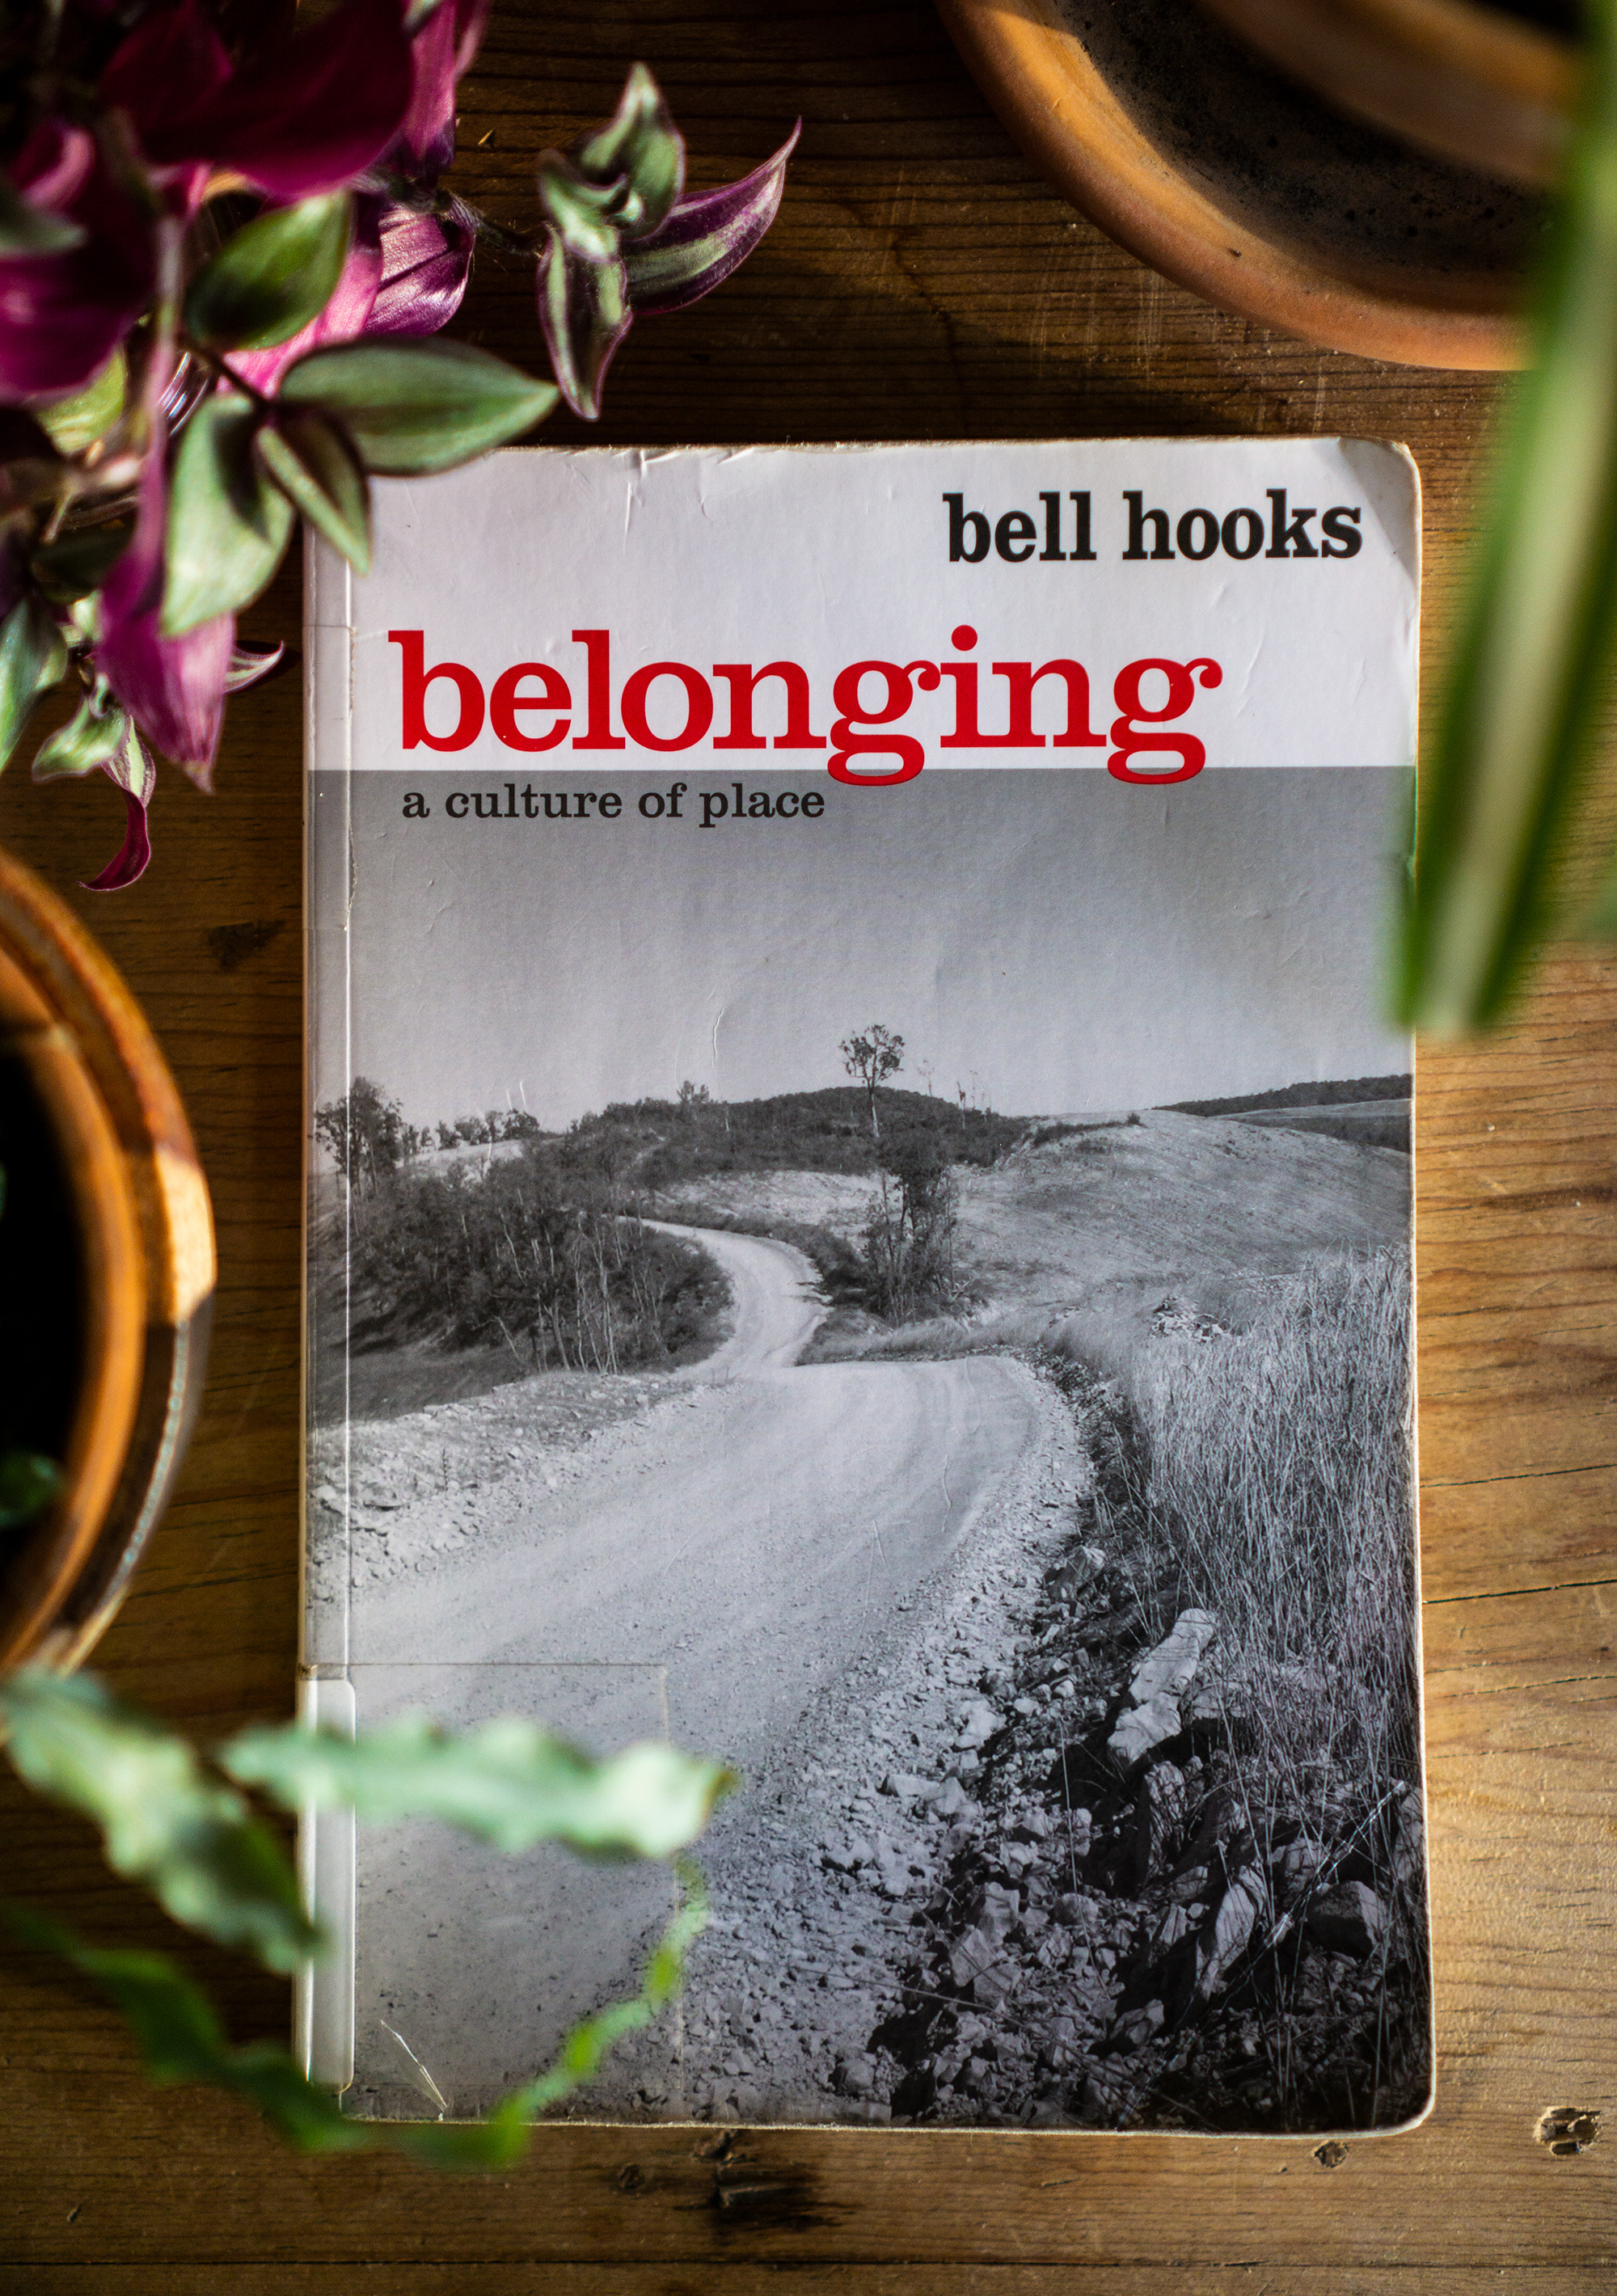 Belonging: A Culture of Place by bell hooks / Darker than Green